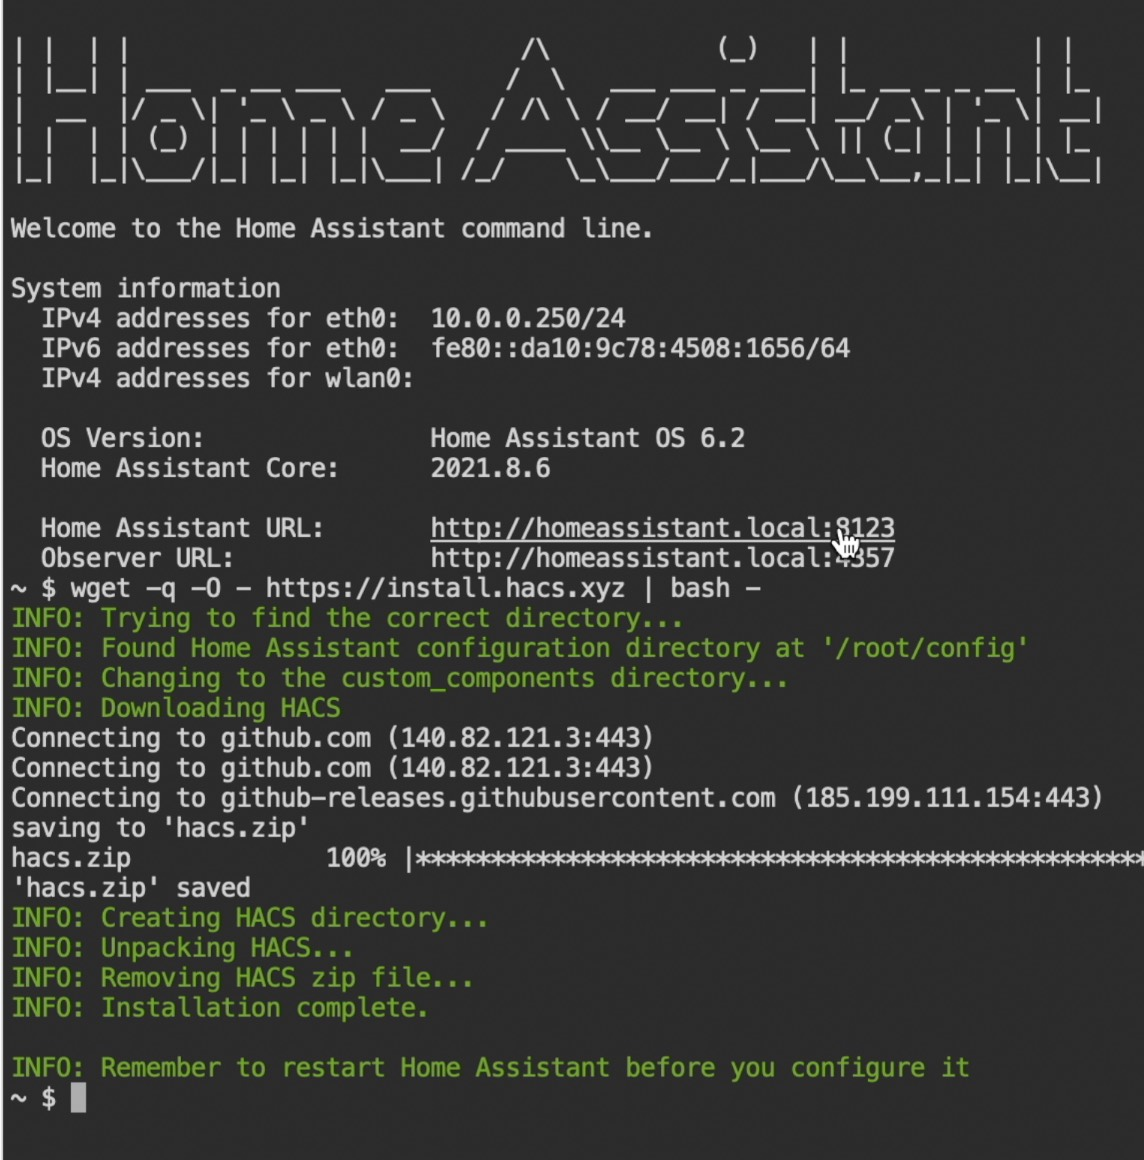 Successful installation of HACS in Home Assistant OS or Supervised using the SSH console.